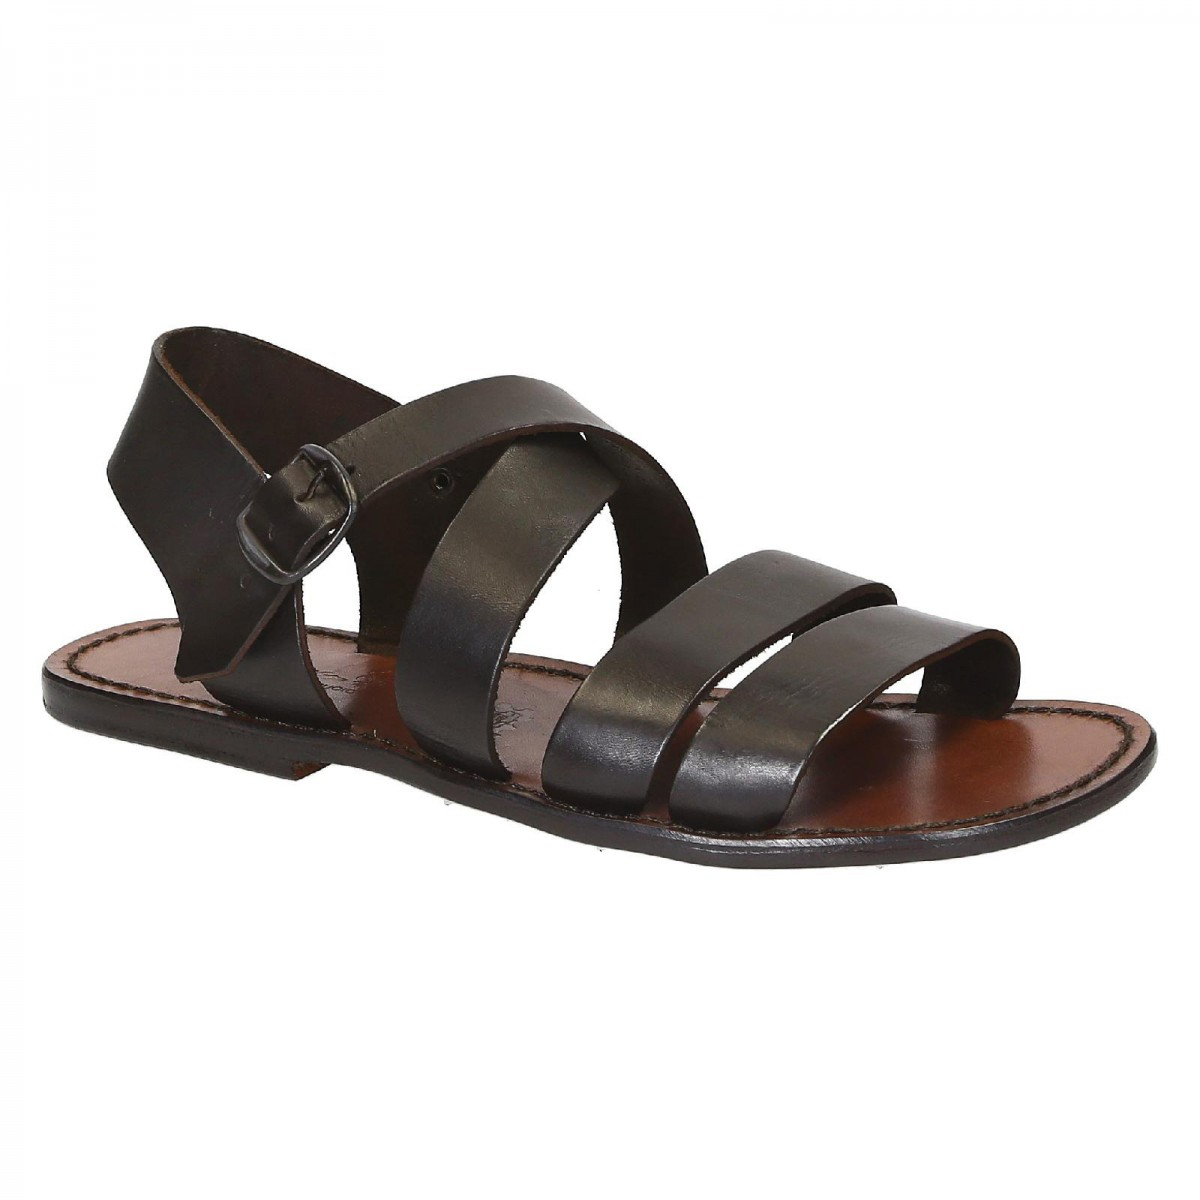 674c08d97 Handmade in Italy mens sandals in dark brown leather. Loading zoom